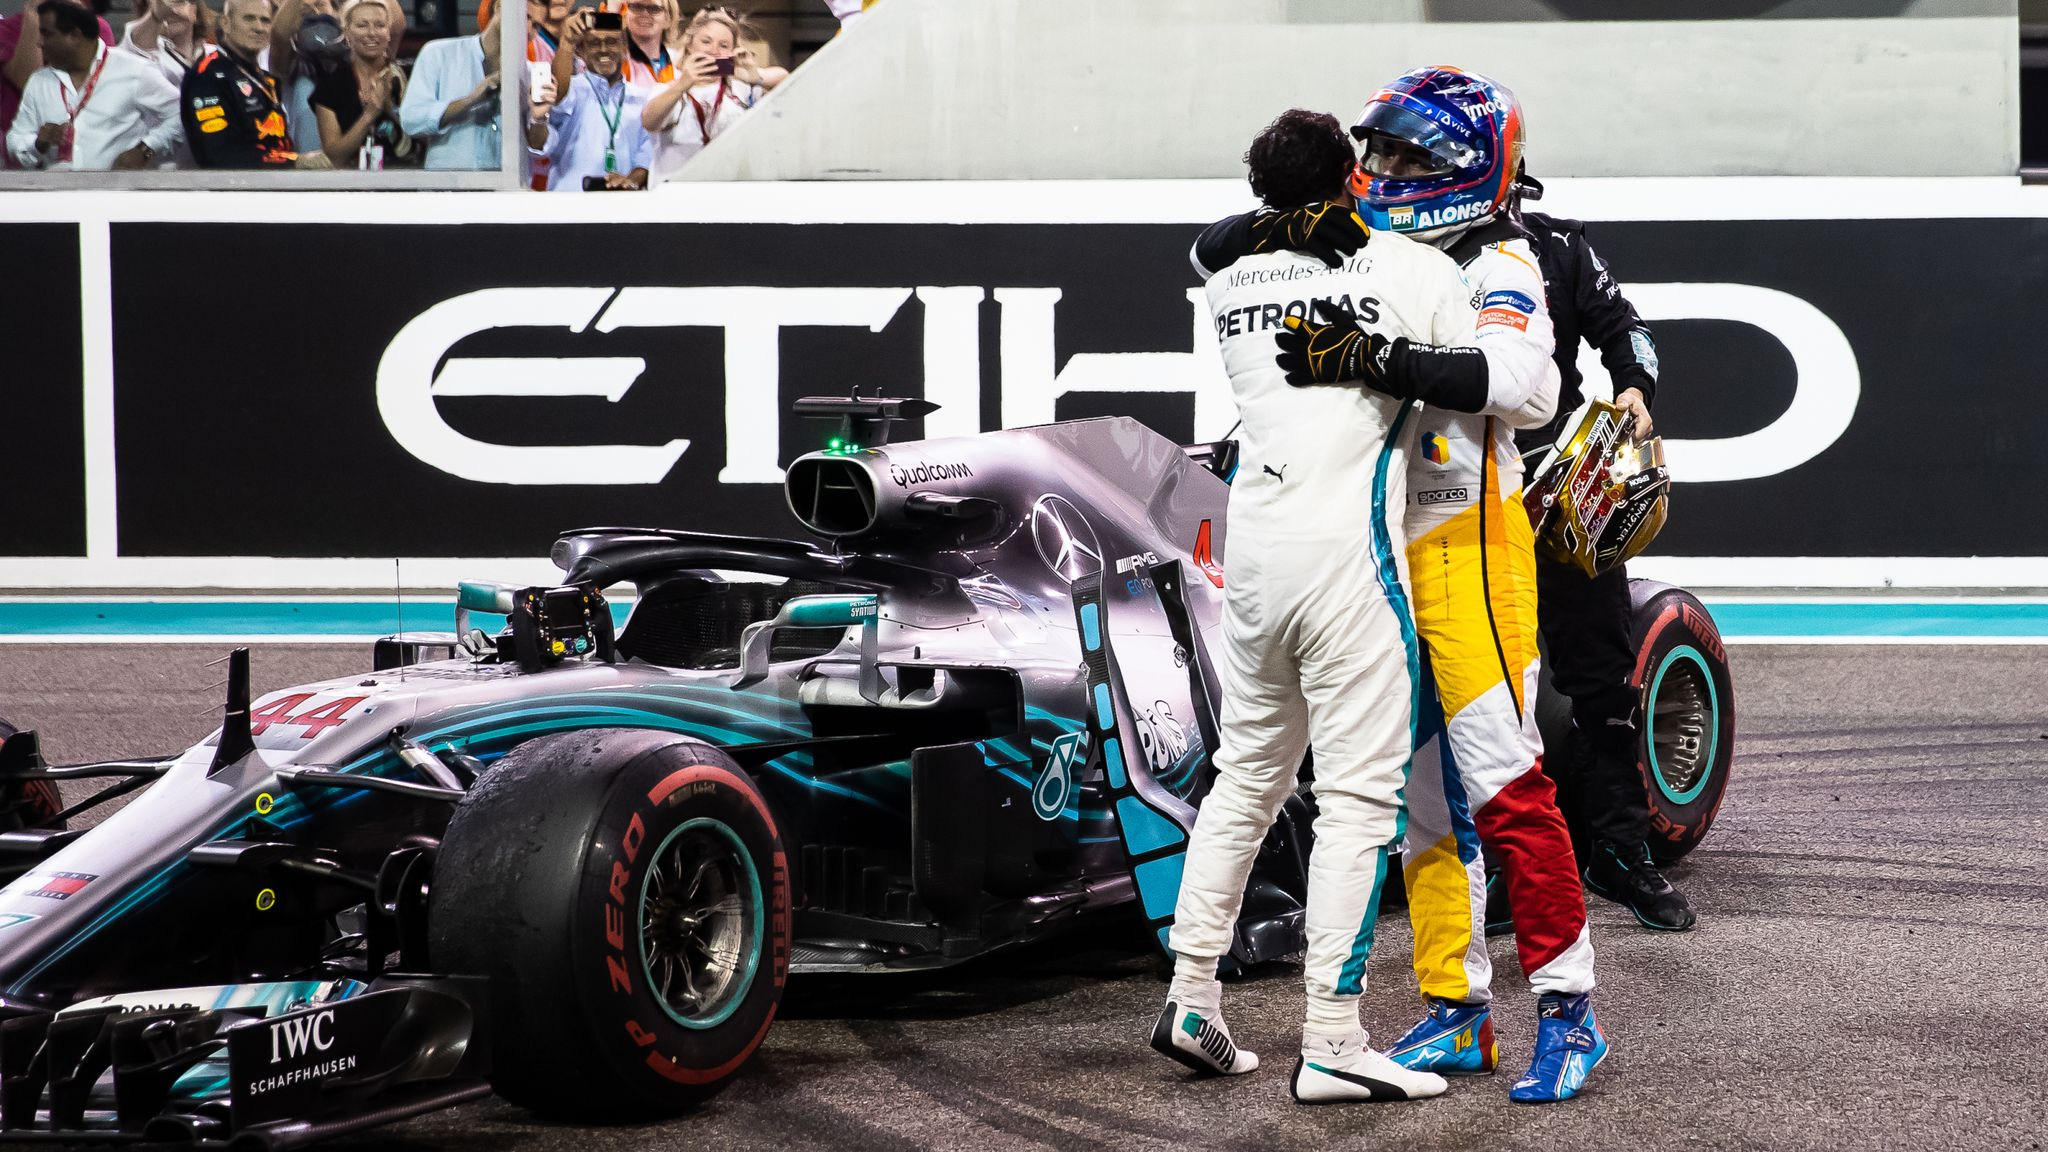 Formula 1 in 2018: The F1 year in 12 pictures